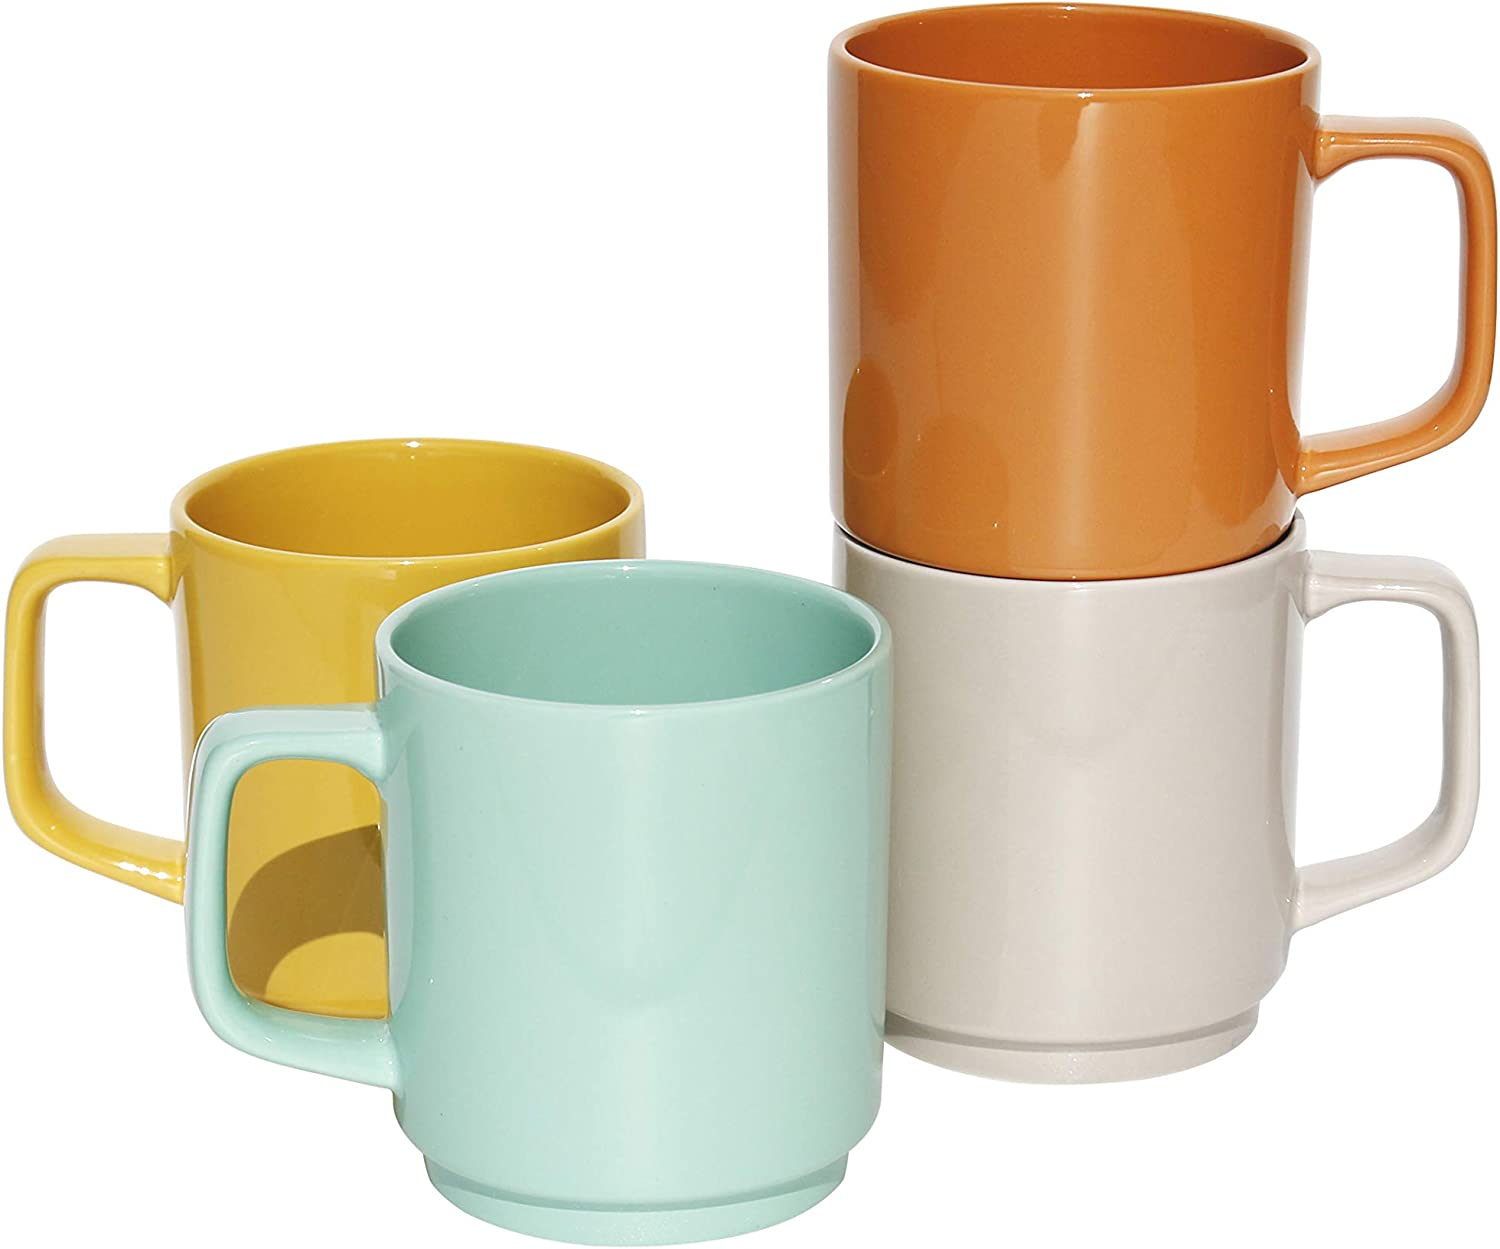 Lovene Aztec Inventory cleanup selling sale Porcelain Mug Cups for Coffee Tea - Juice Cocoa sold out